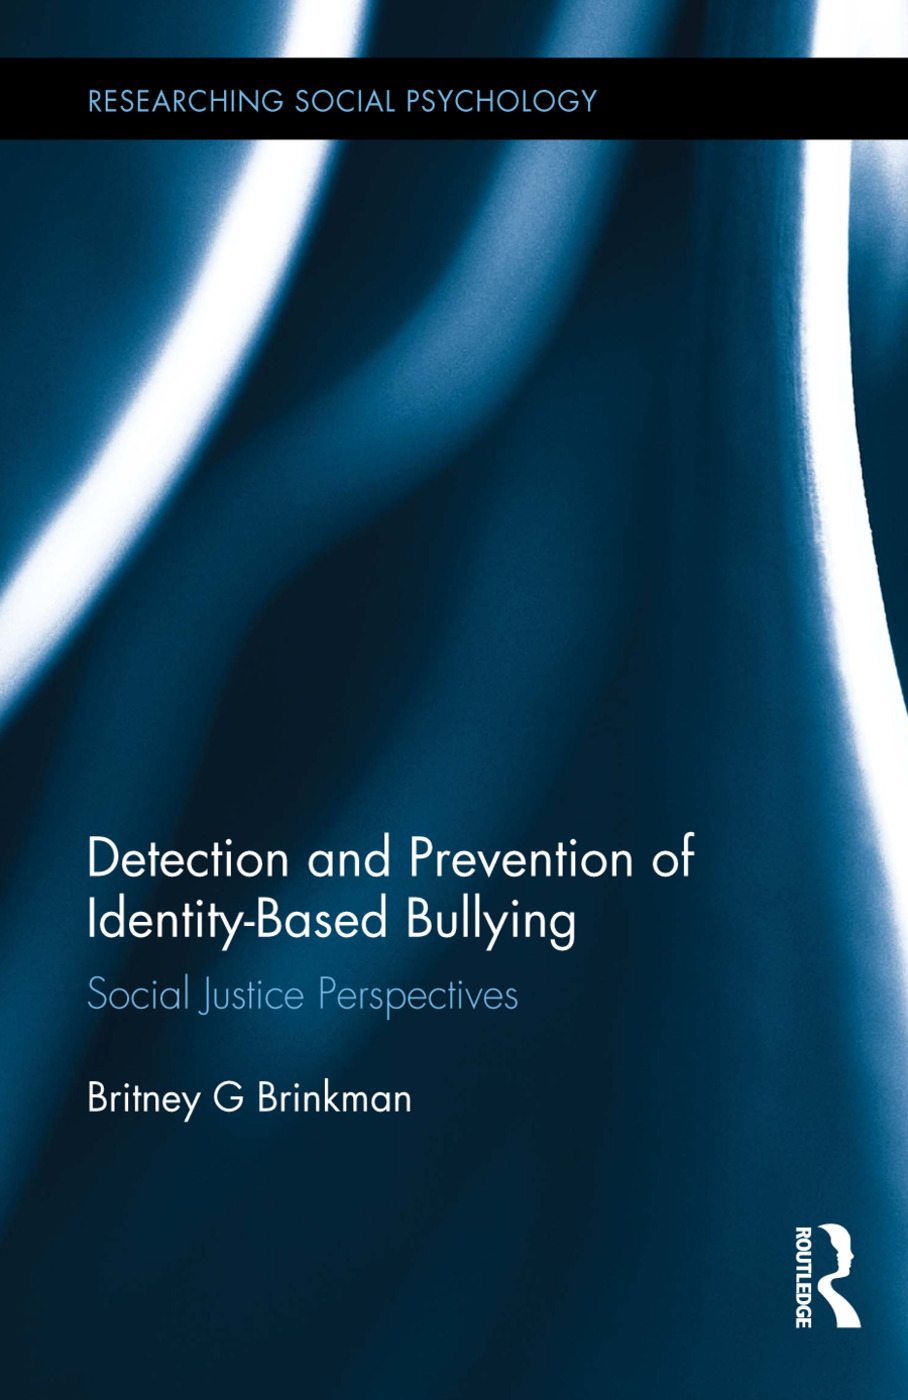 Detection and Prevention of Identity-Based Bullying: Social Justice Perspectives book cover